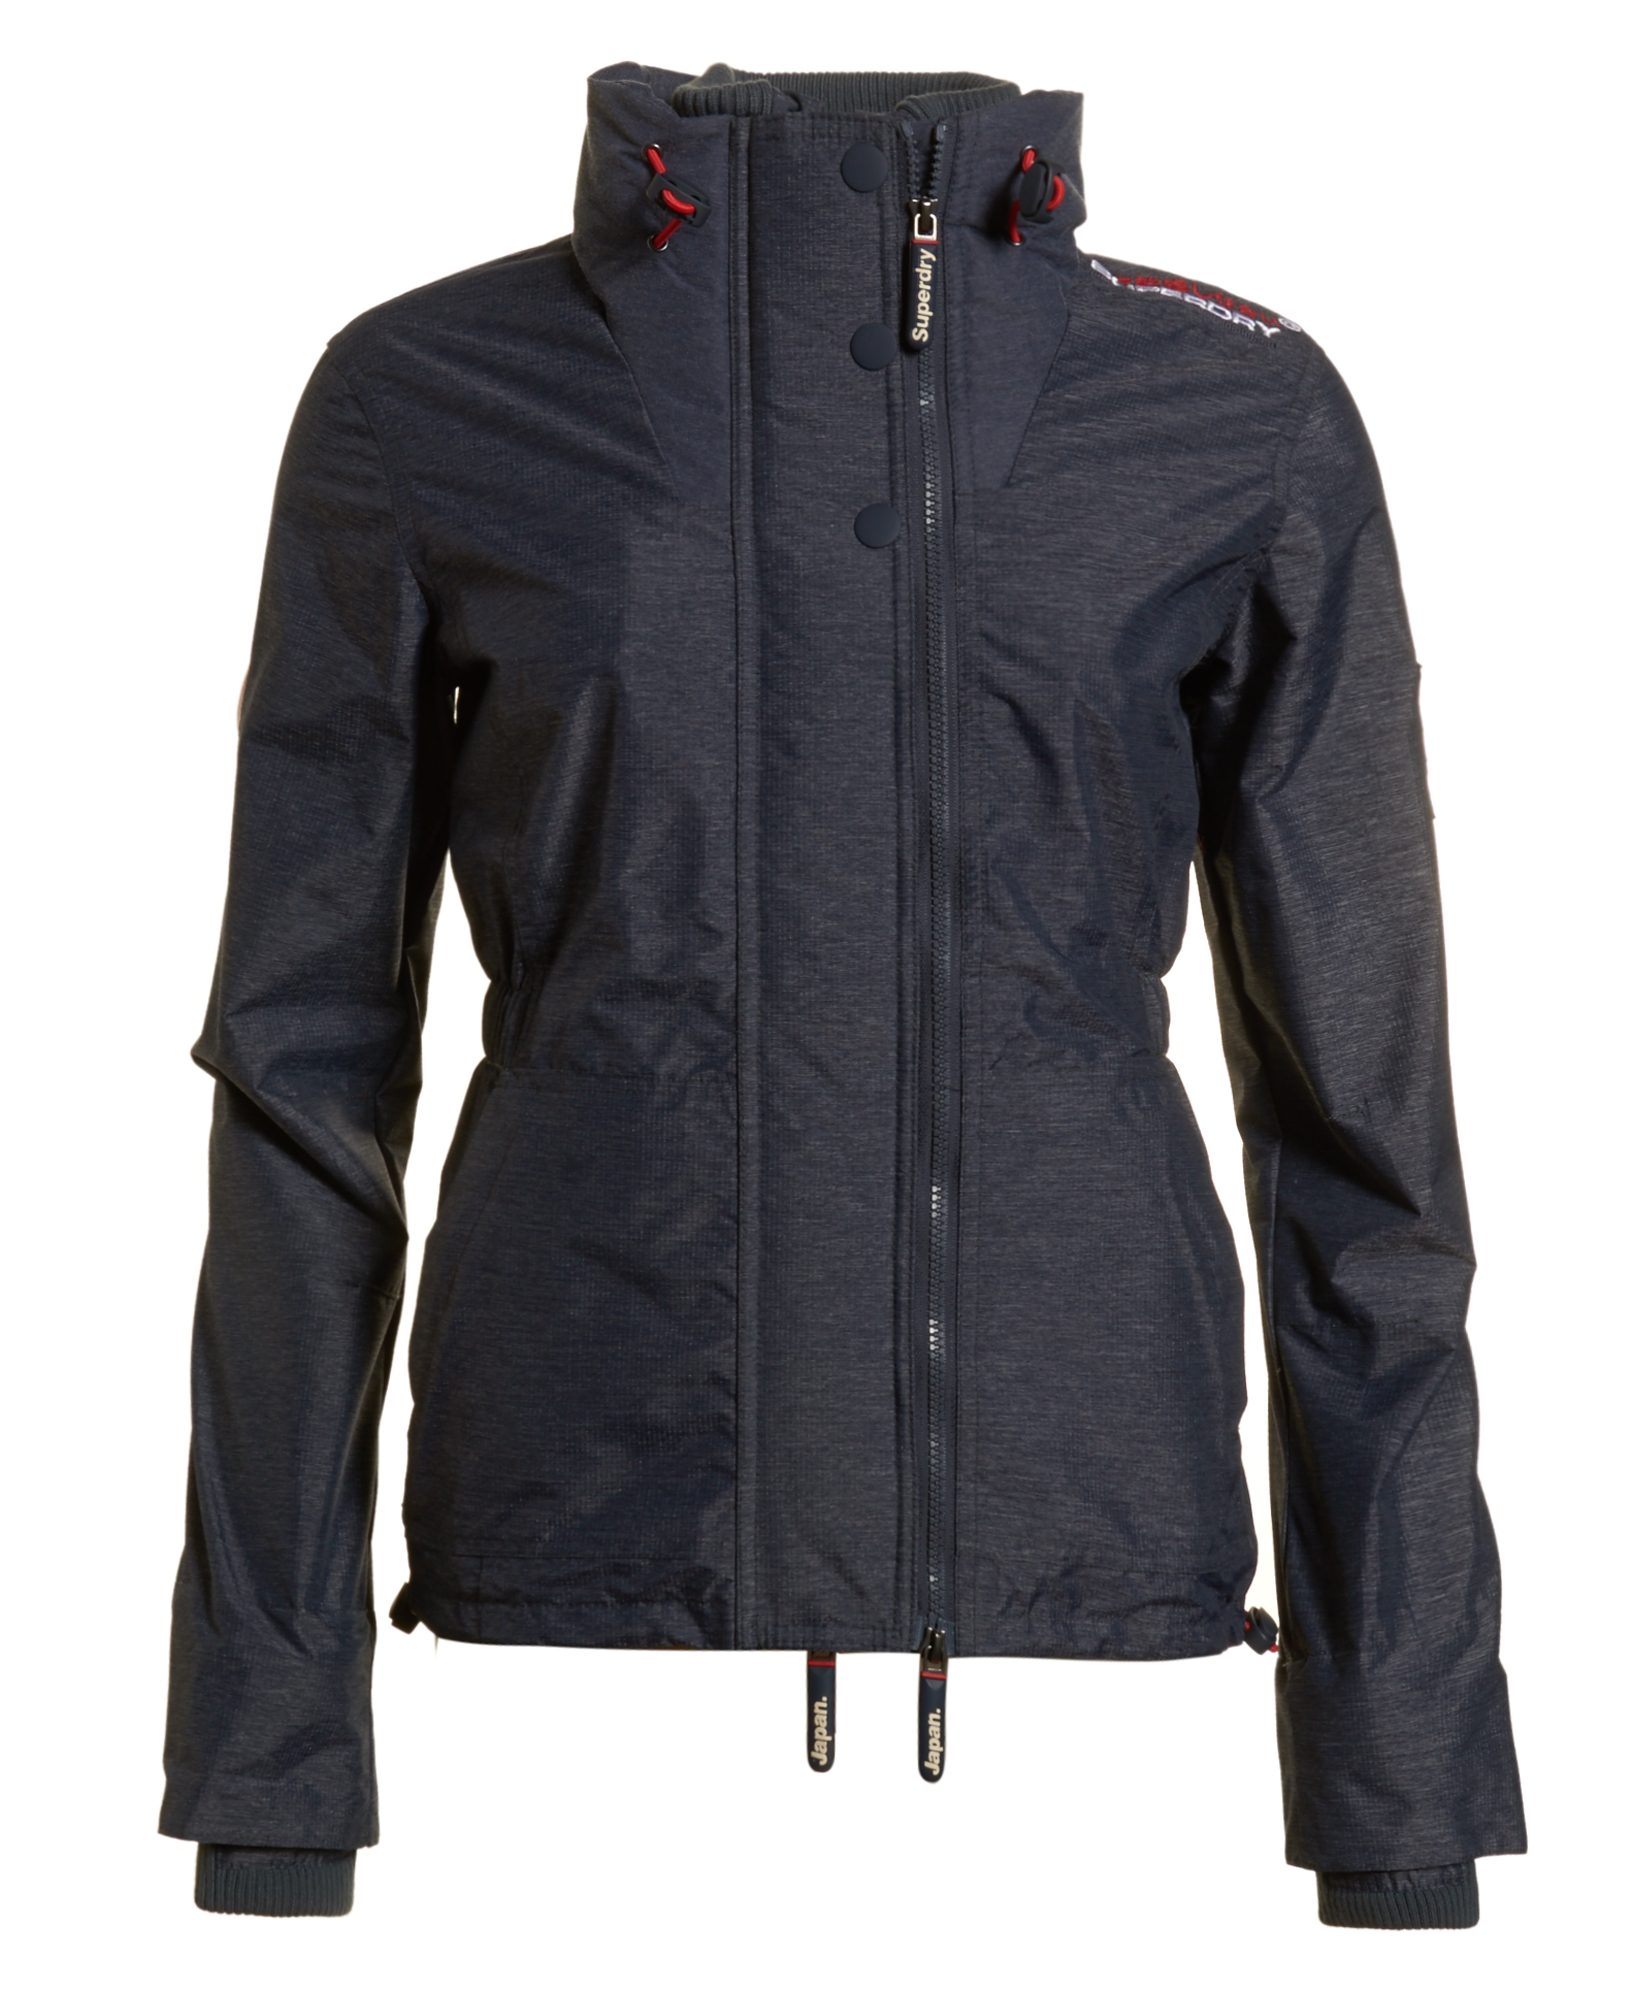 neue damen superdry jacke technical wind attacker dark navy meliert ebay. Black Bedroom Furniture Sets. Home Design Ideas